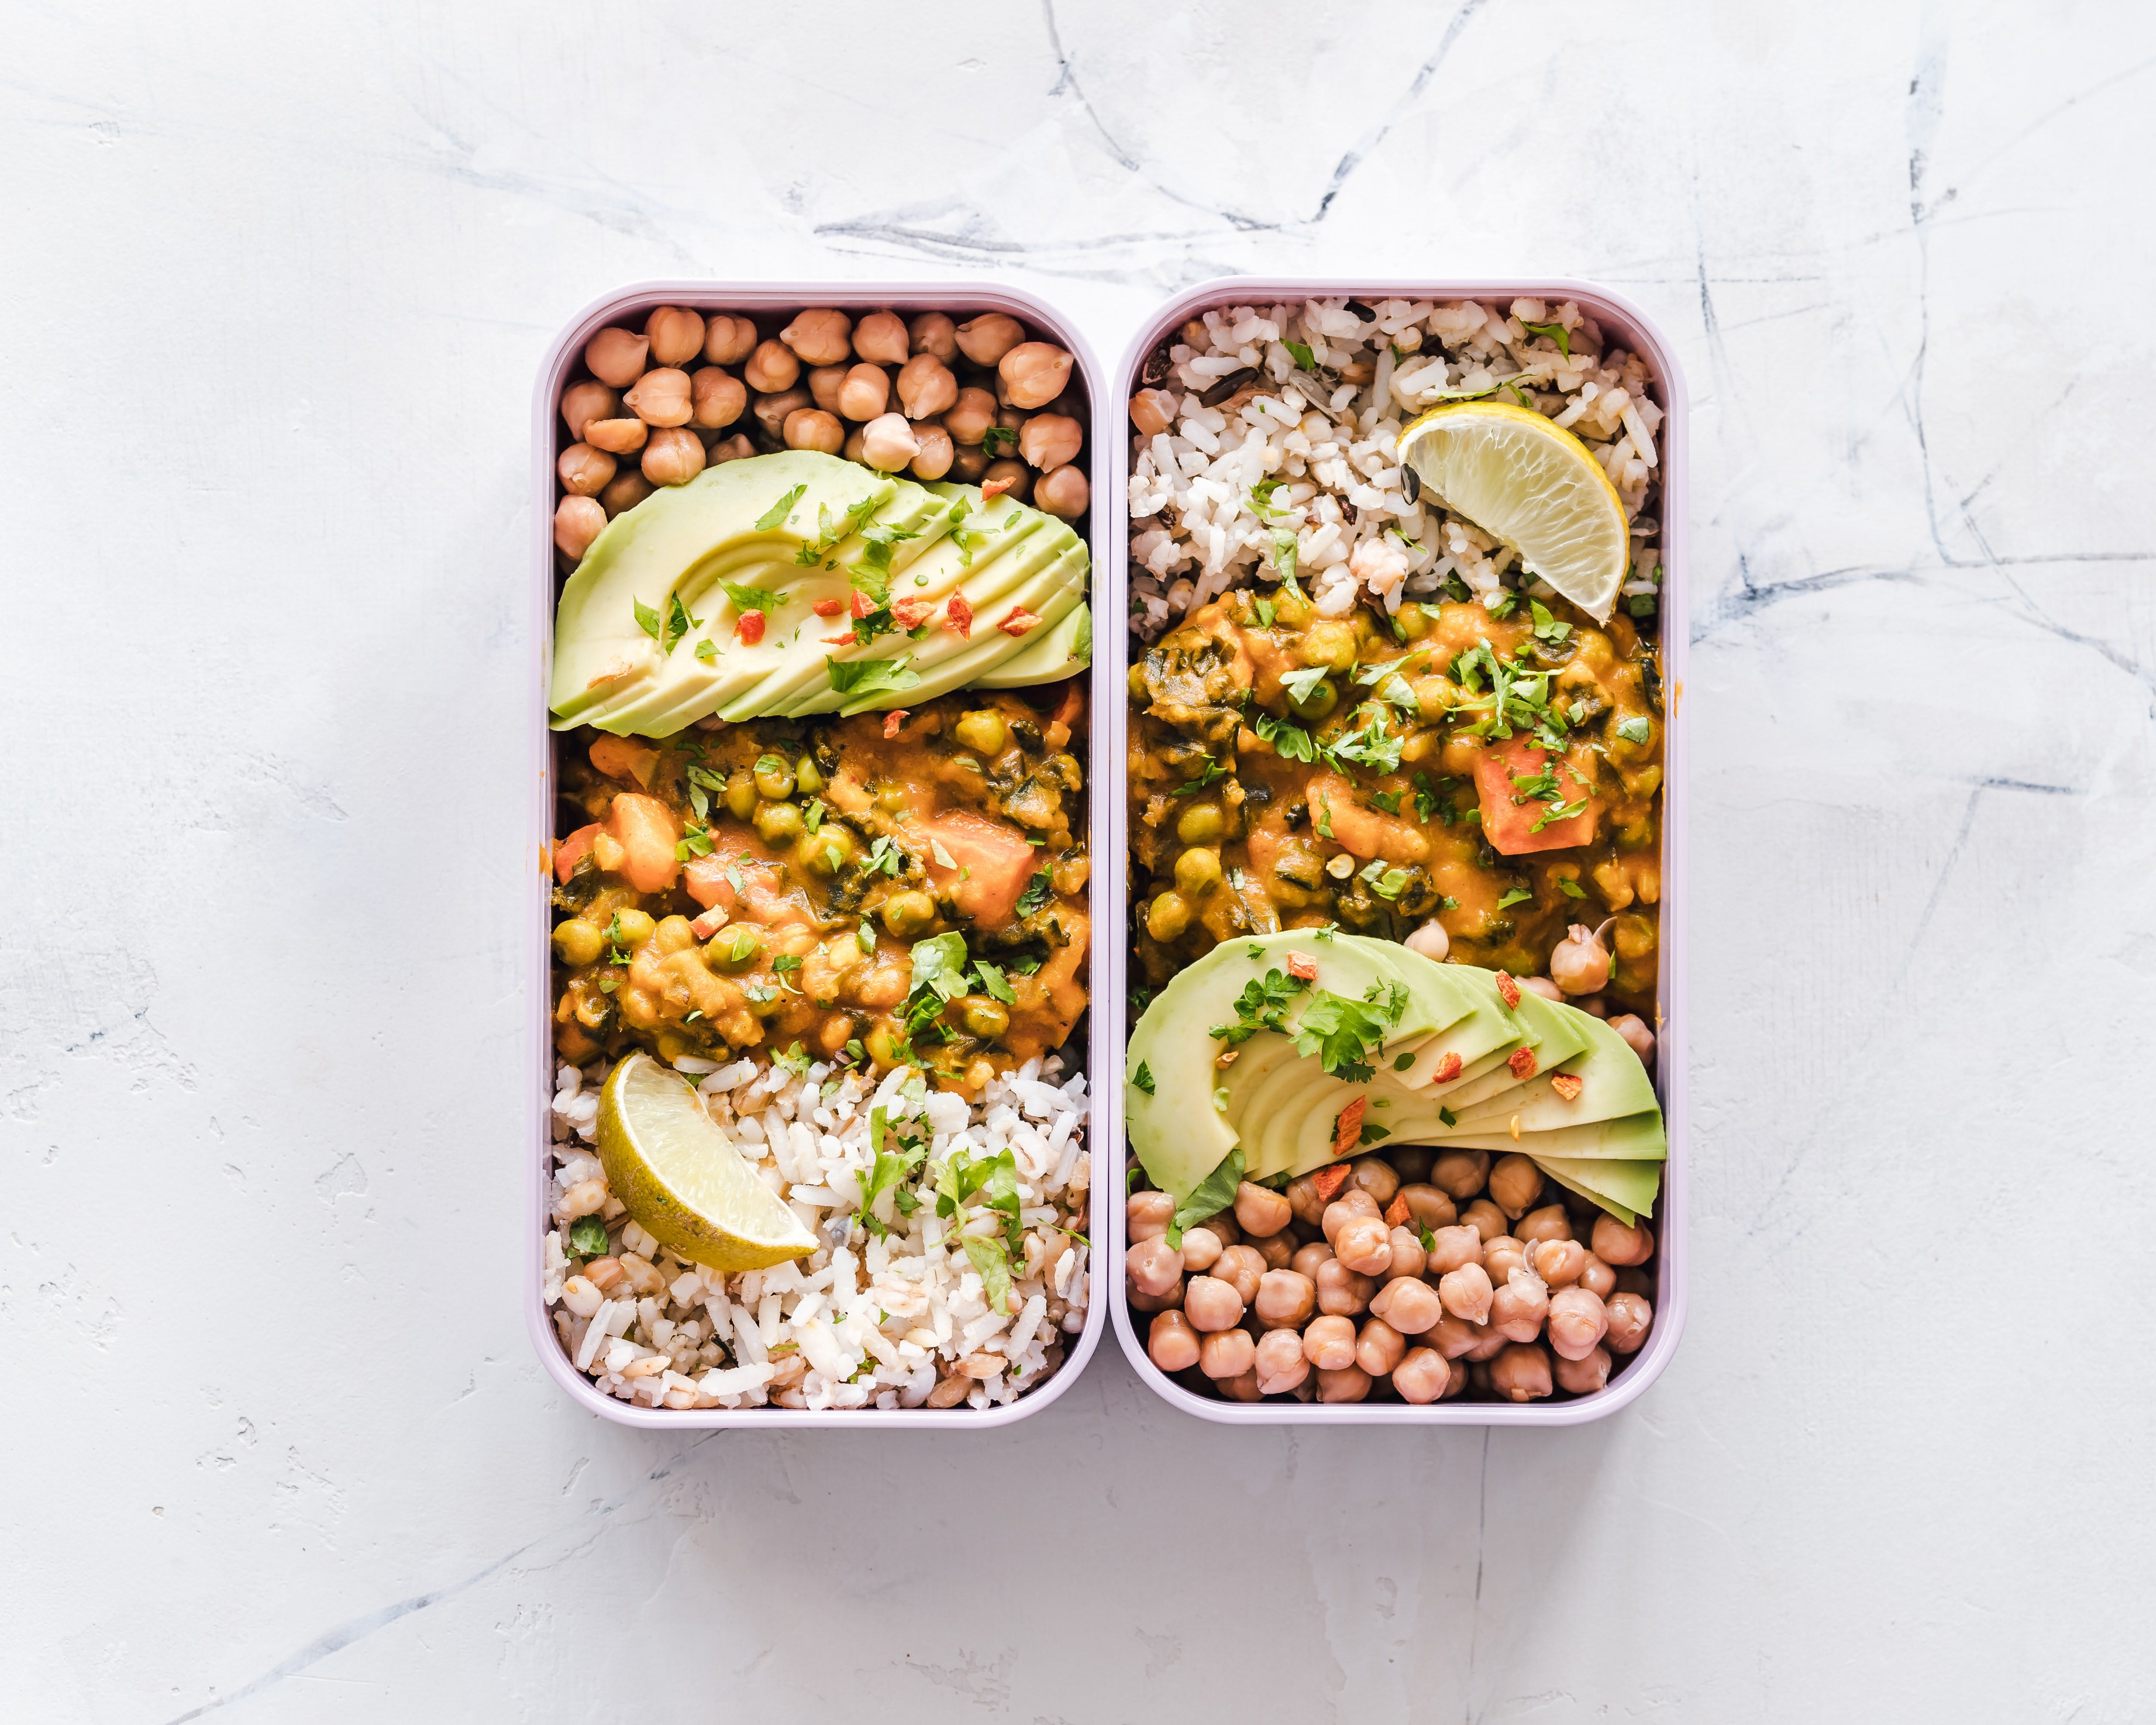 Order In Wholesome LunchBoxes From This Delivery Service